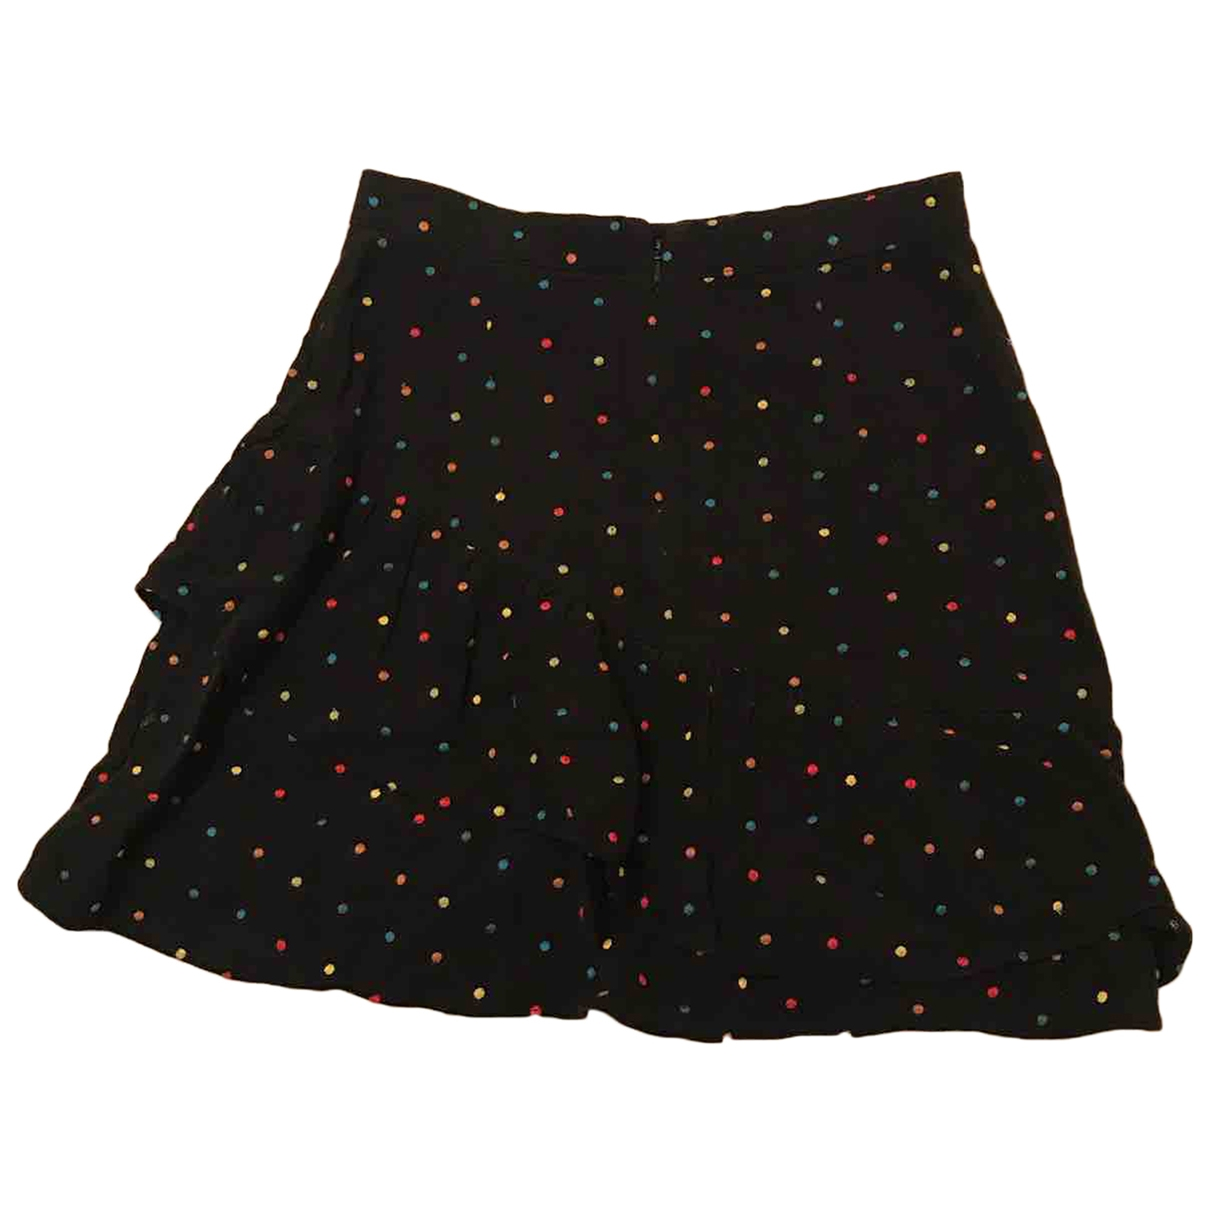 & Stories \N Black Linen skirt for Women 8 UK